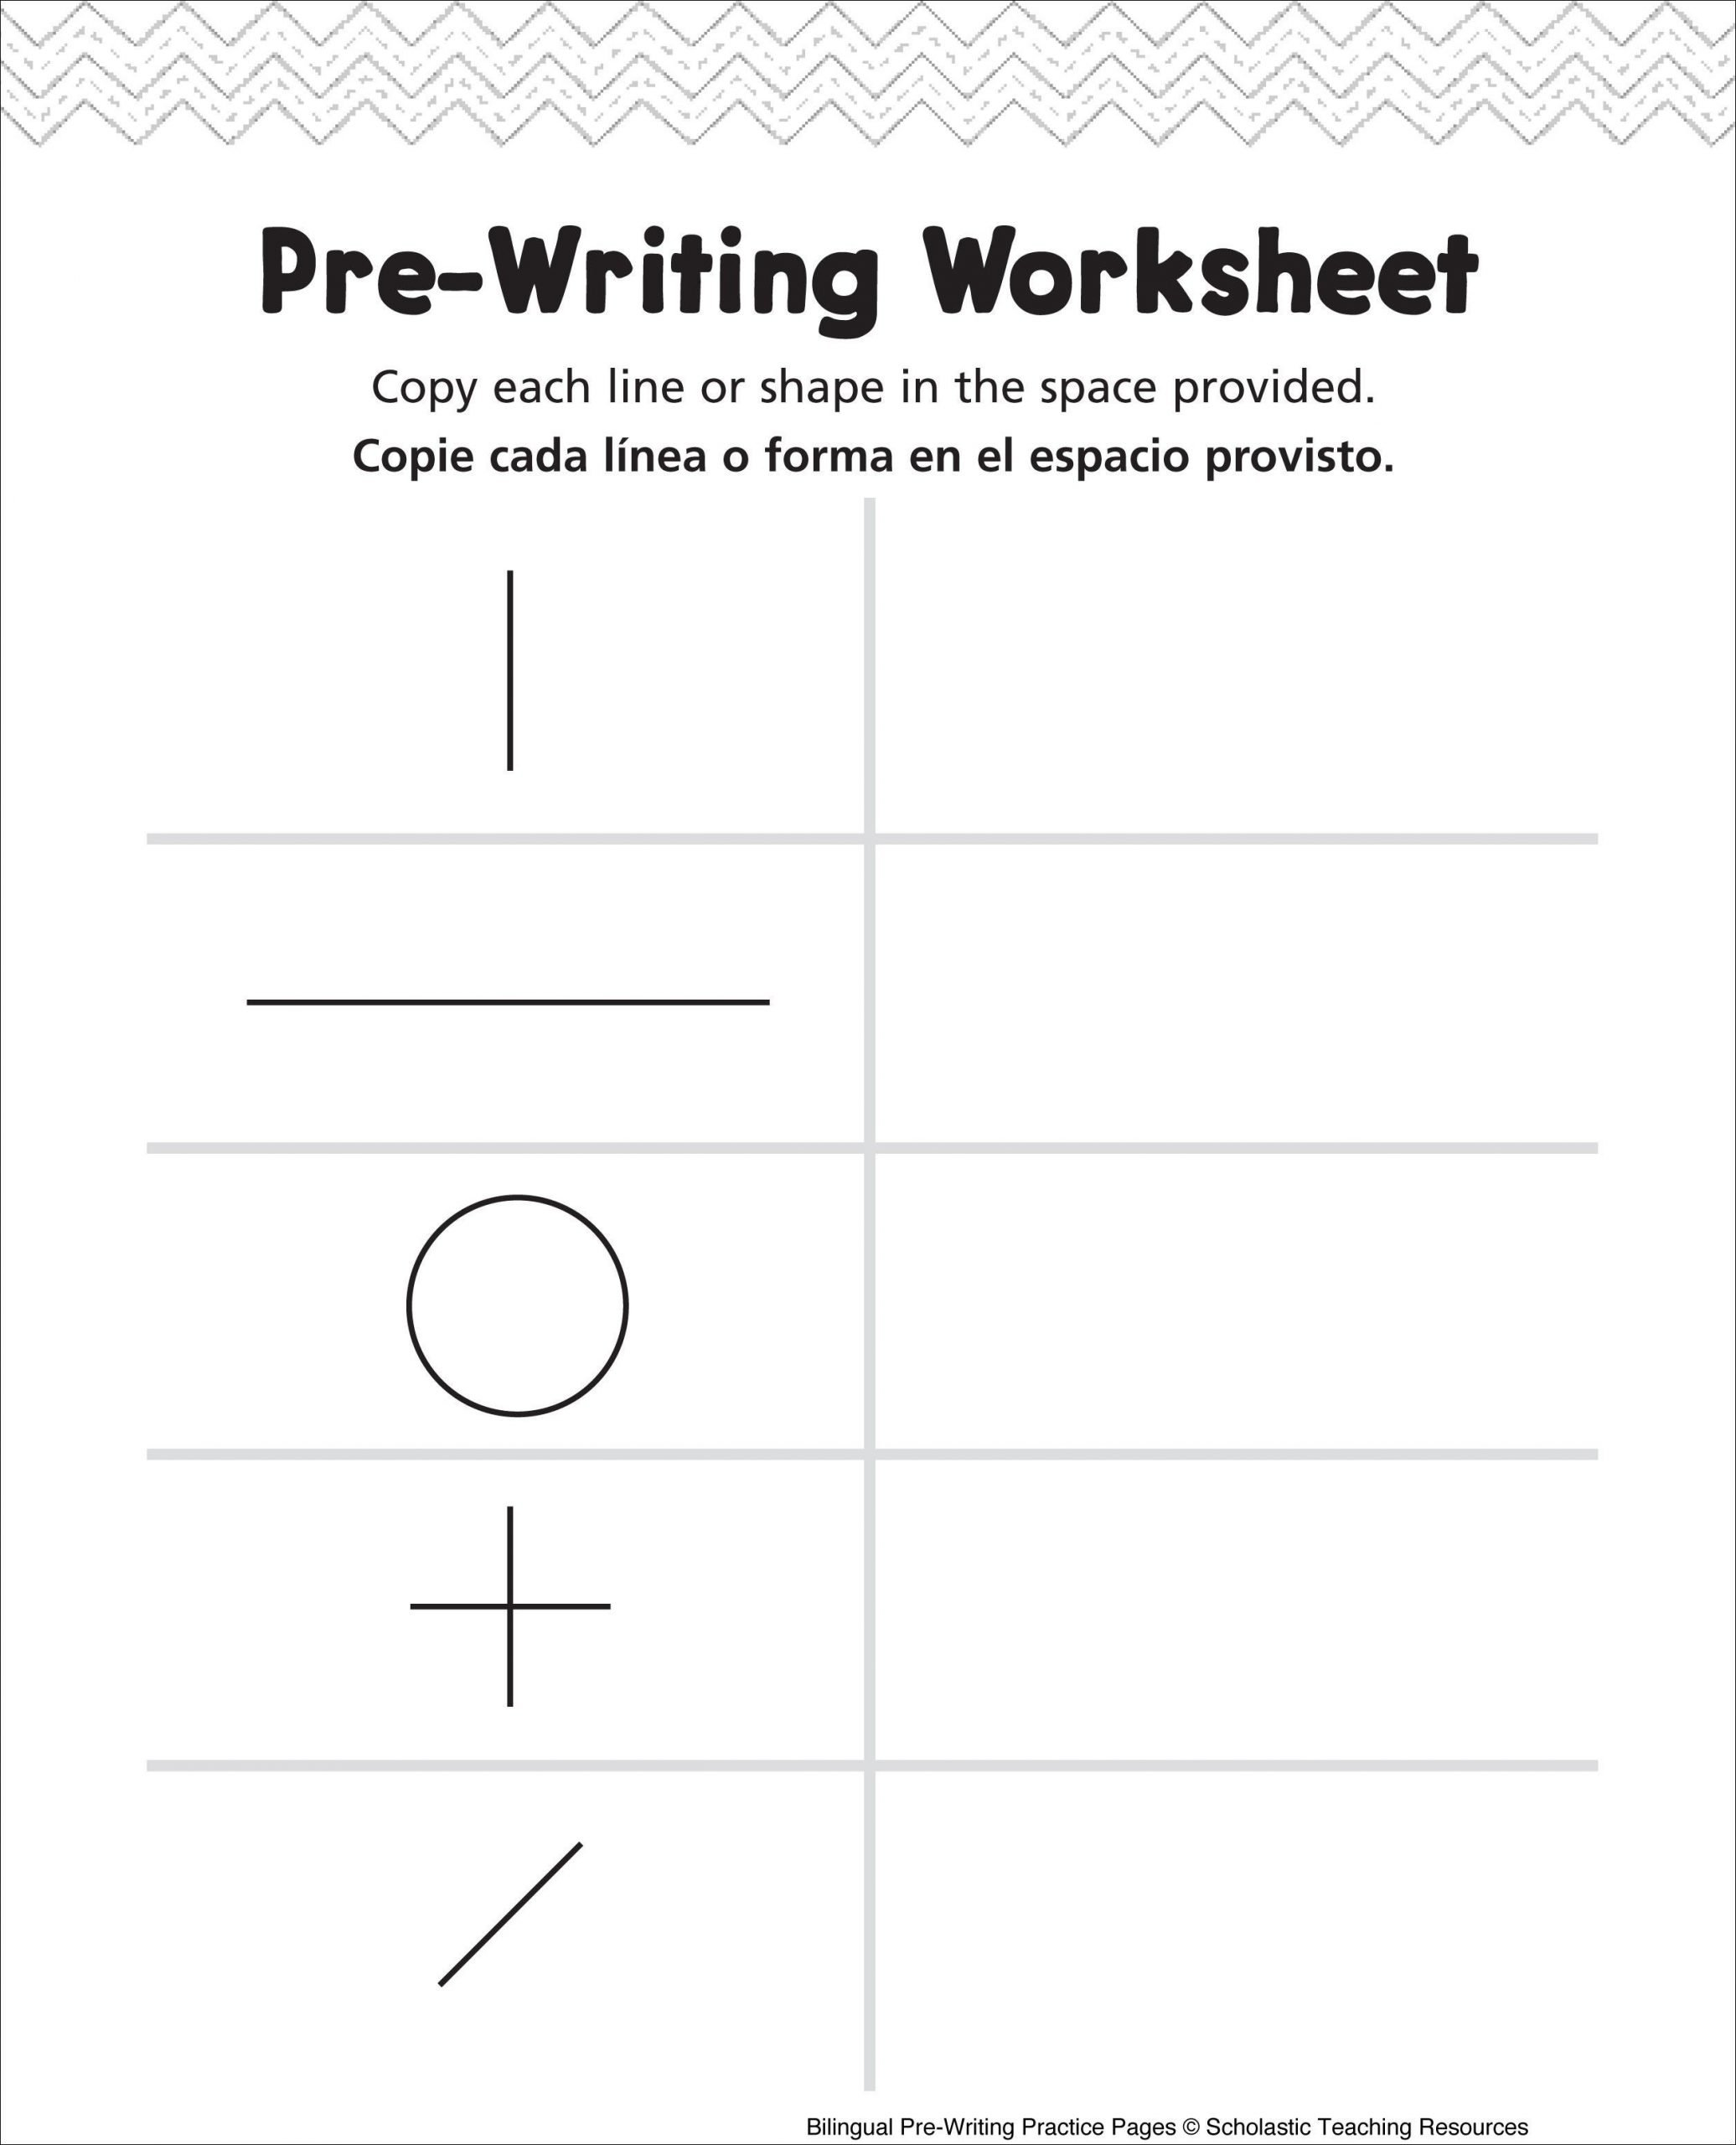 Pre Writing Worksheets Free Pre Writing Worksheet Bilingual Practice Page